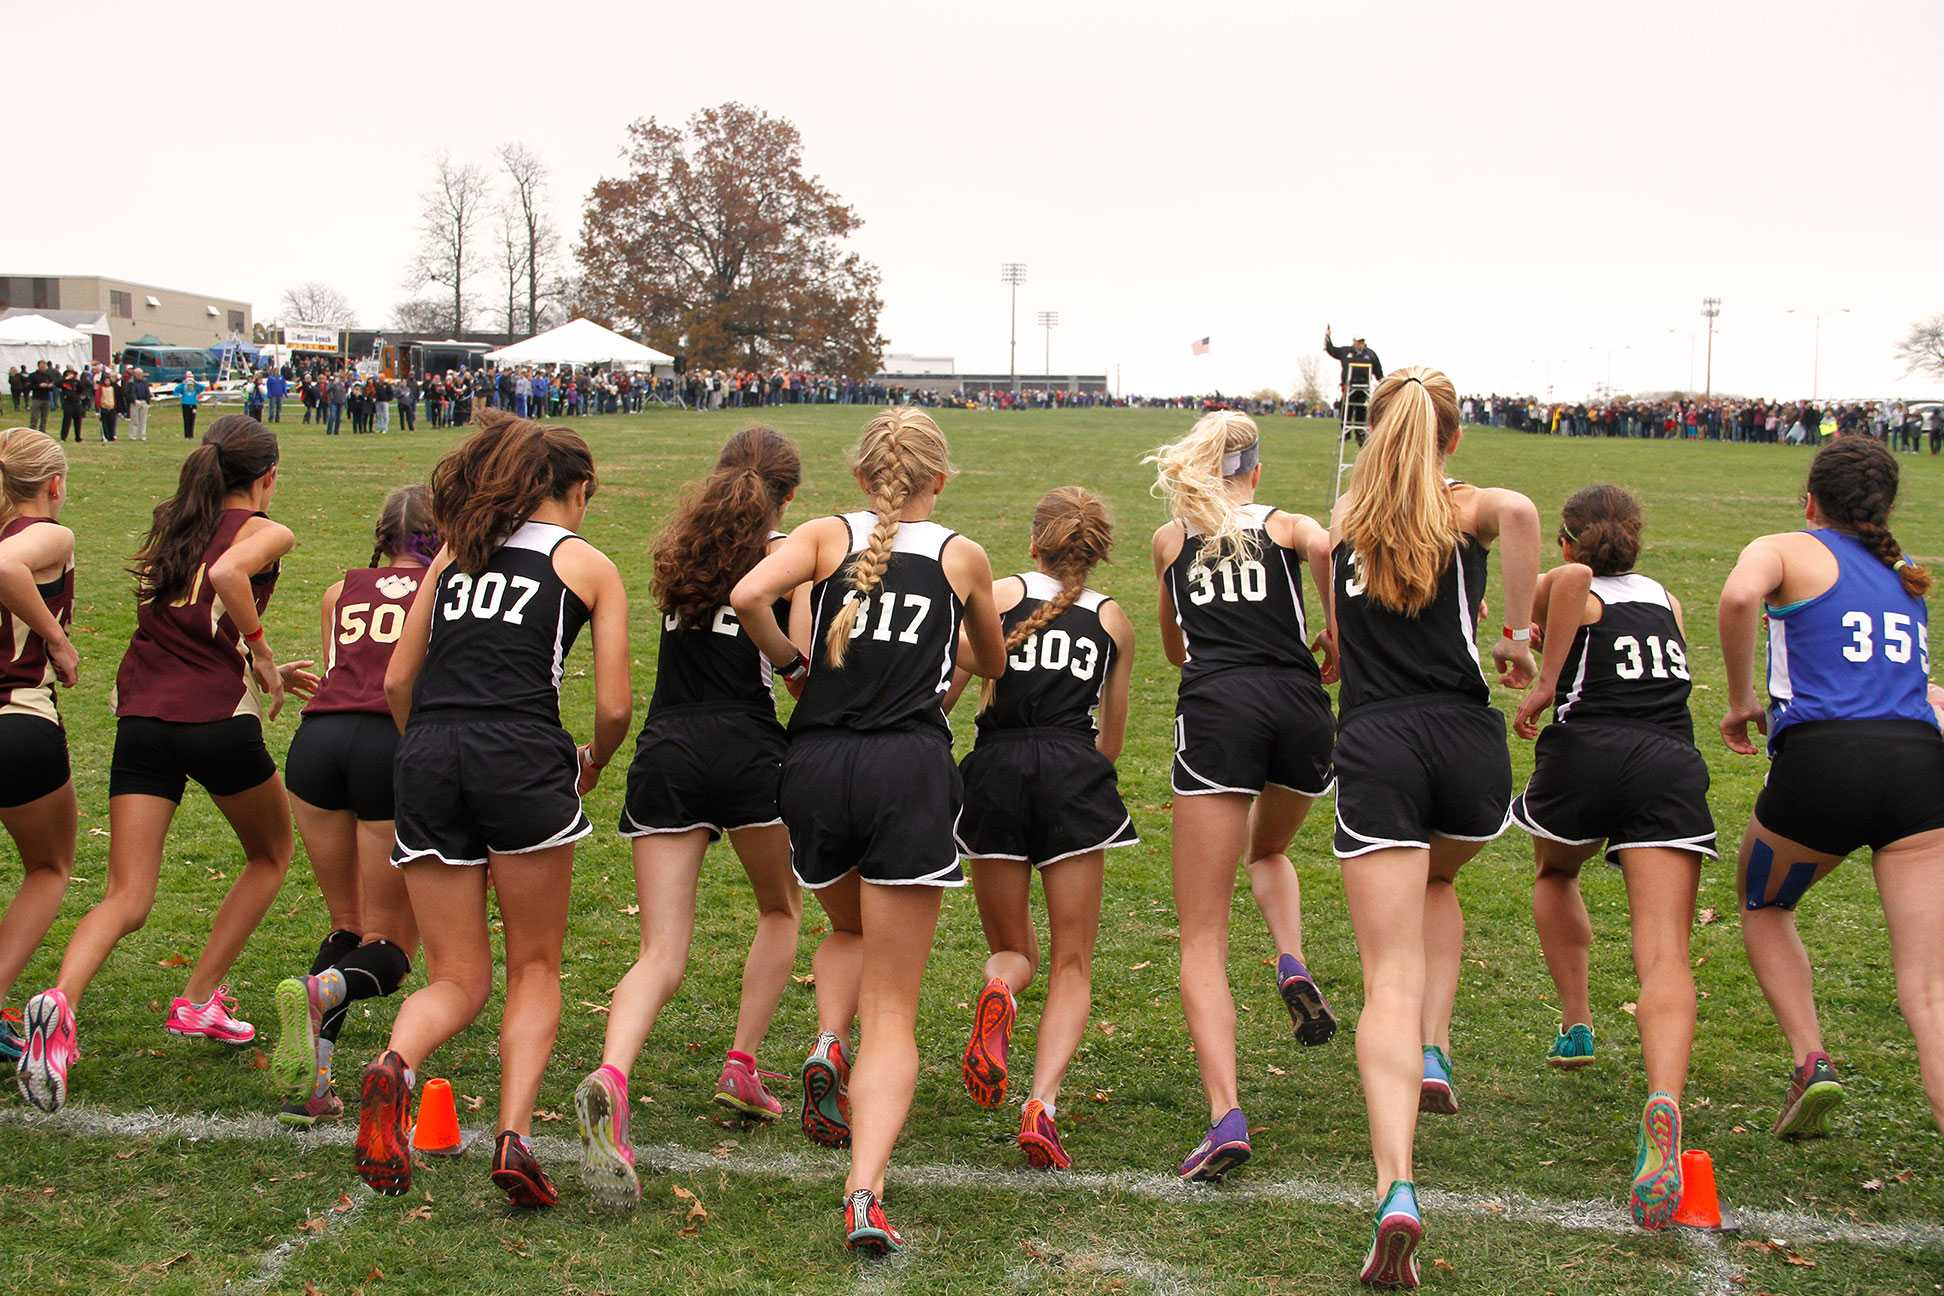 Women's cross country pushes off the starting line at the Youngstown Regional Championship Oct. 31.